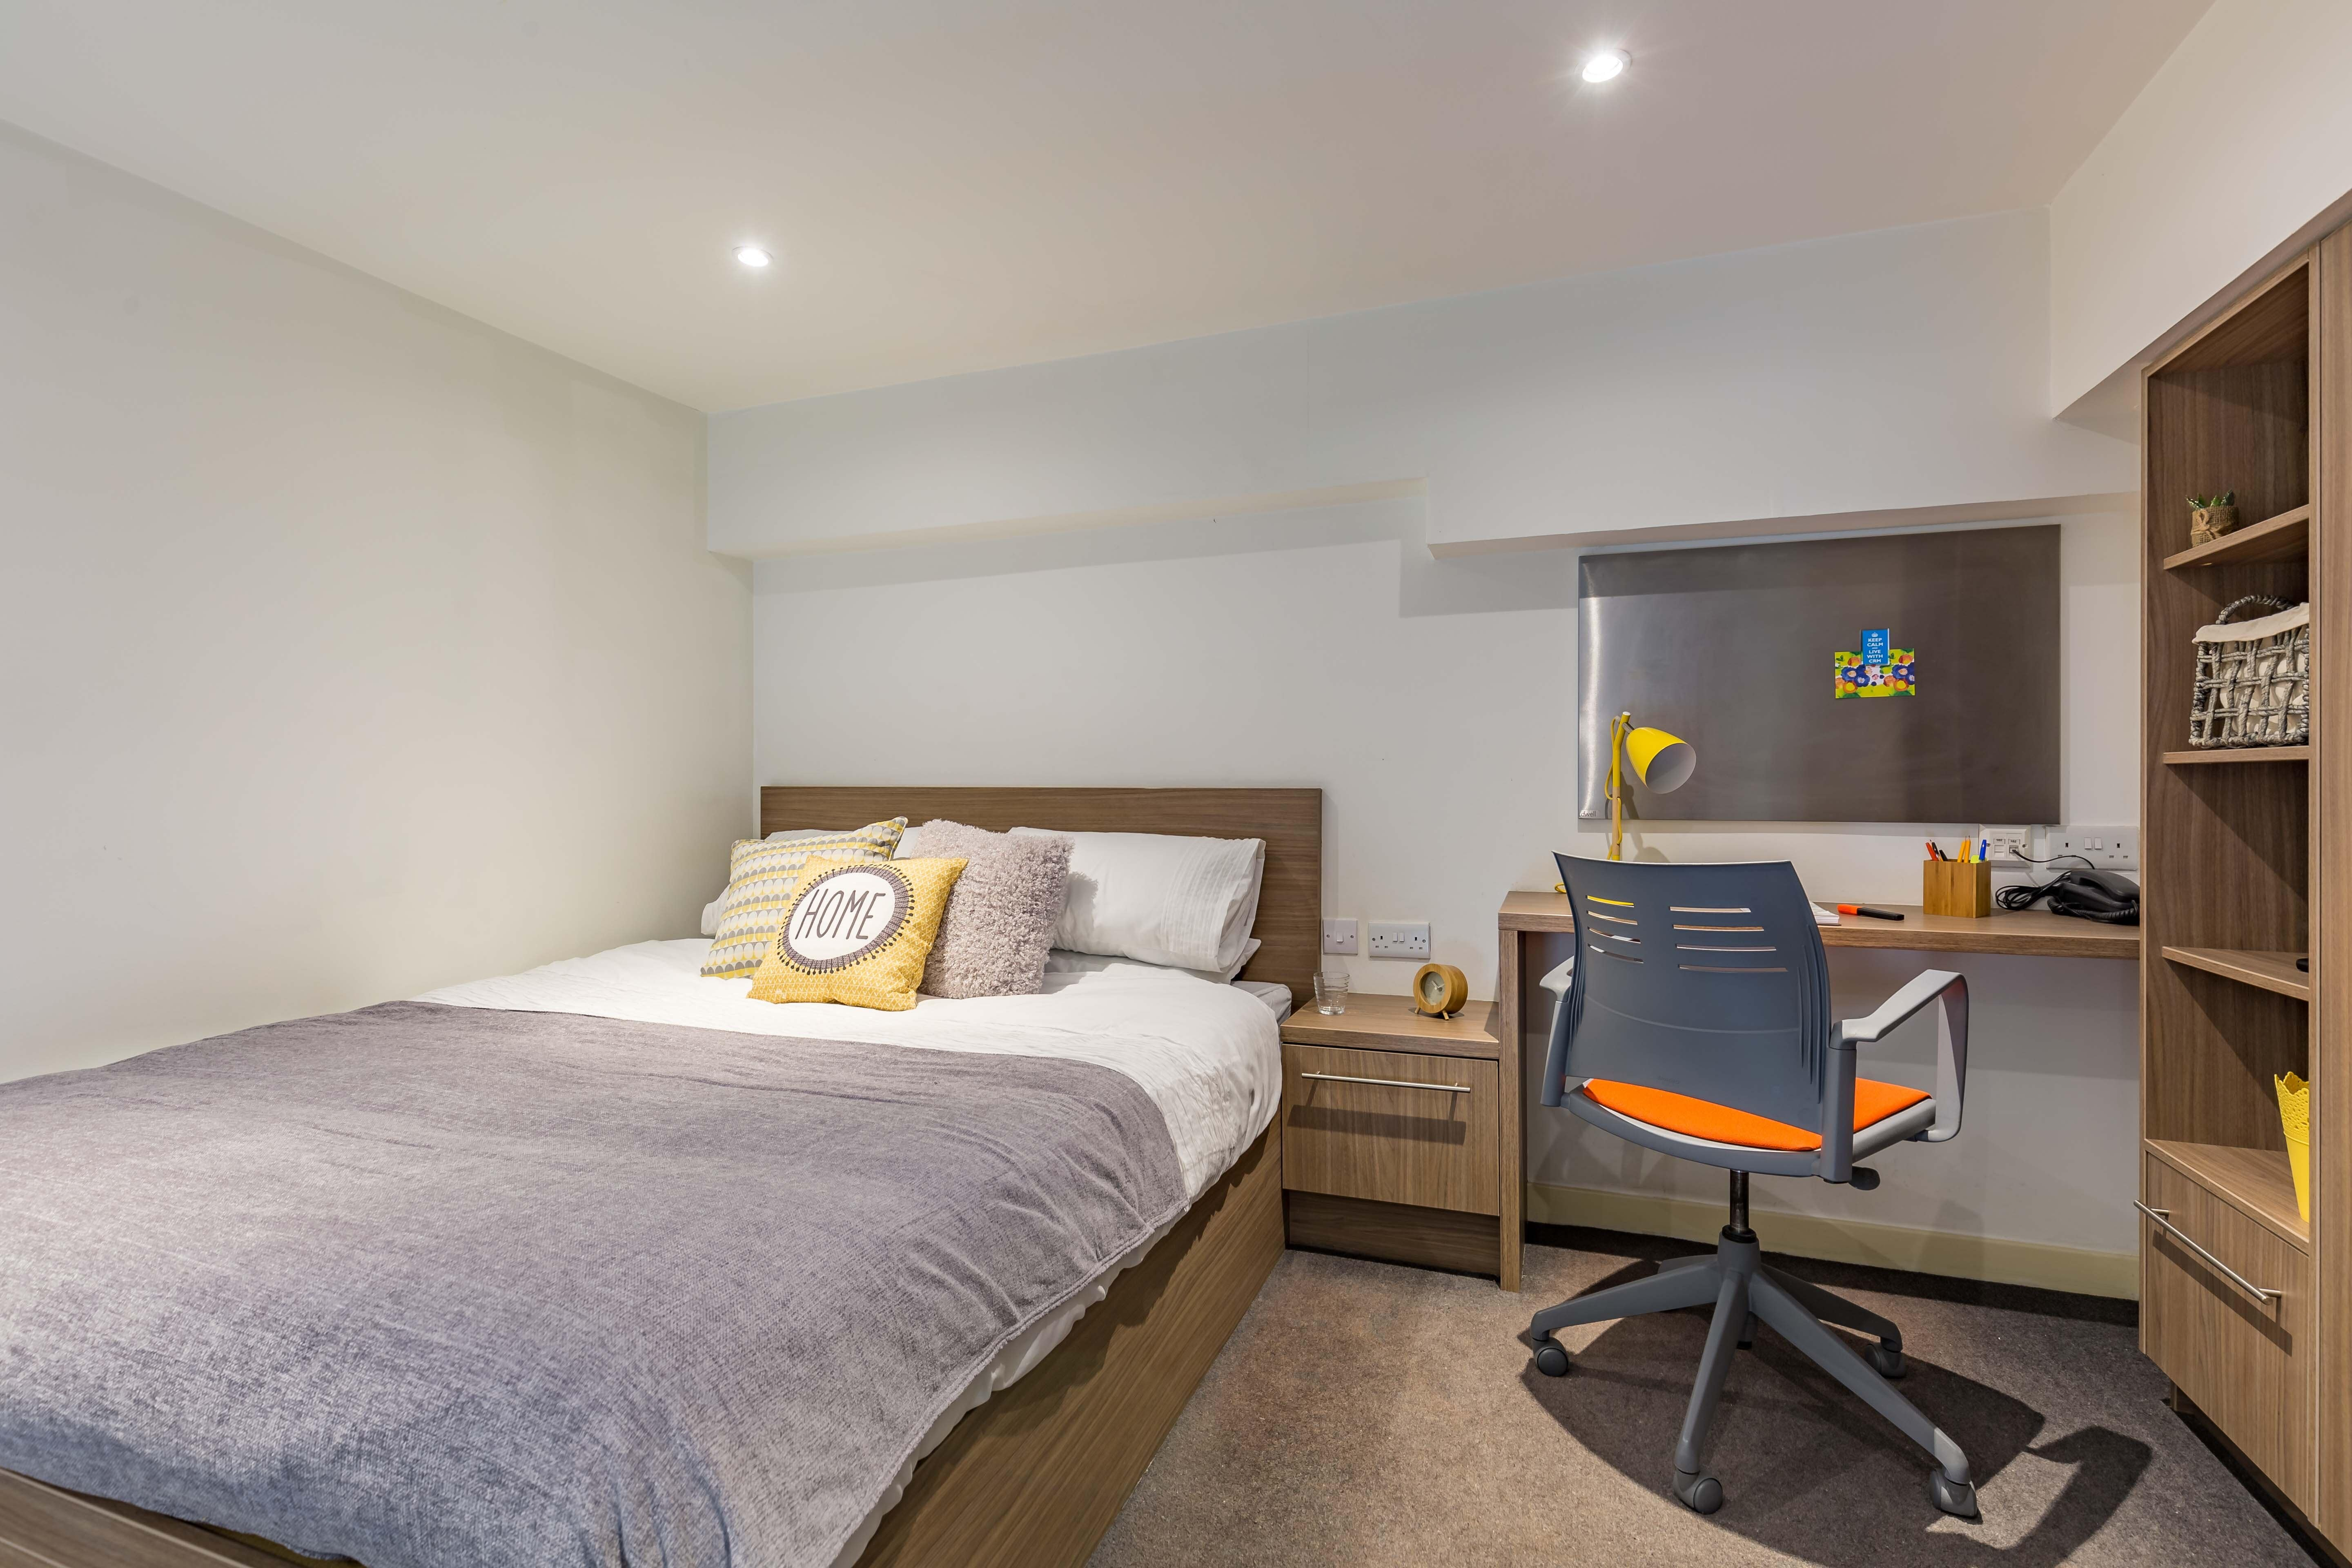 Gallery Apartments Glasgow Student Housing Amberstudent Com